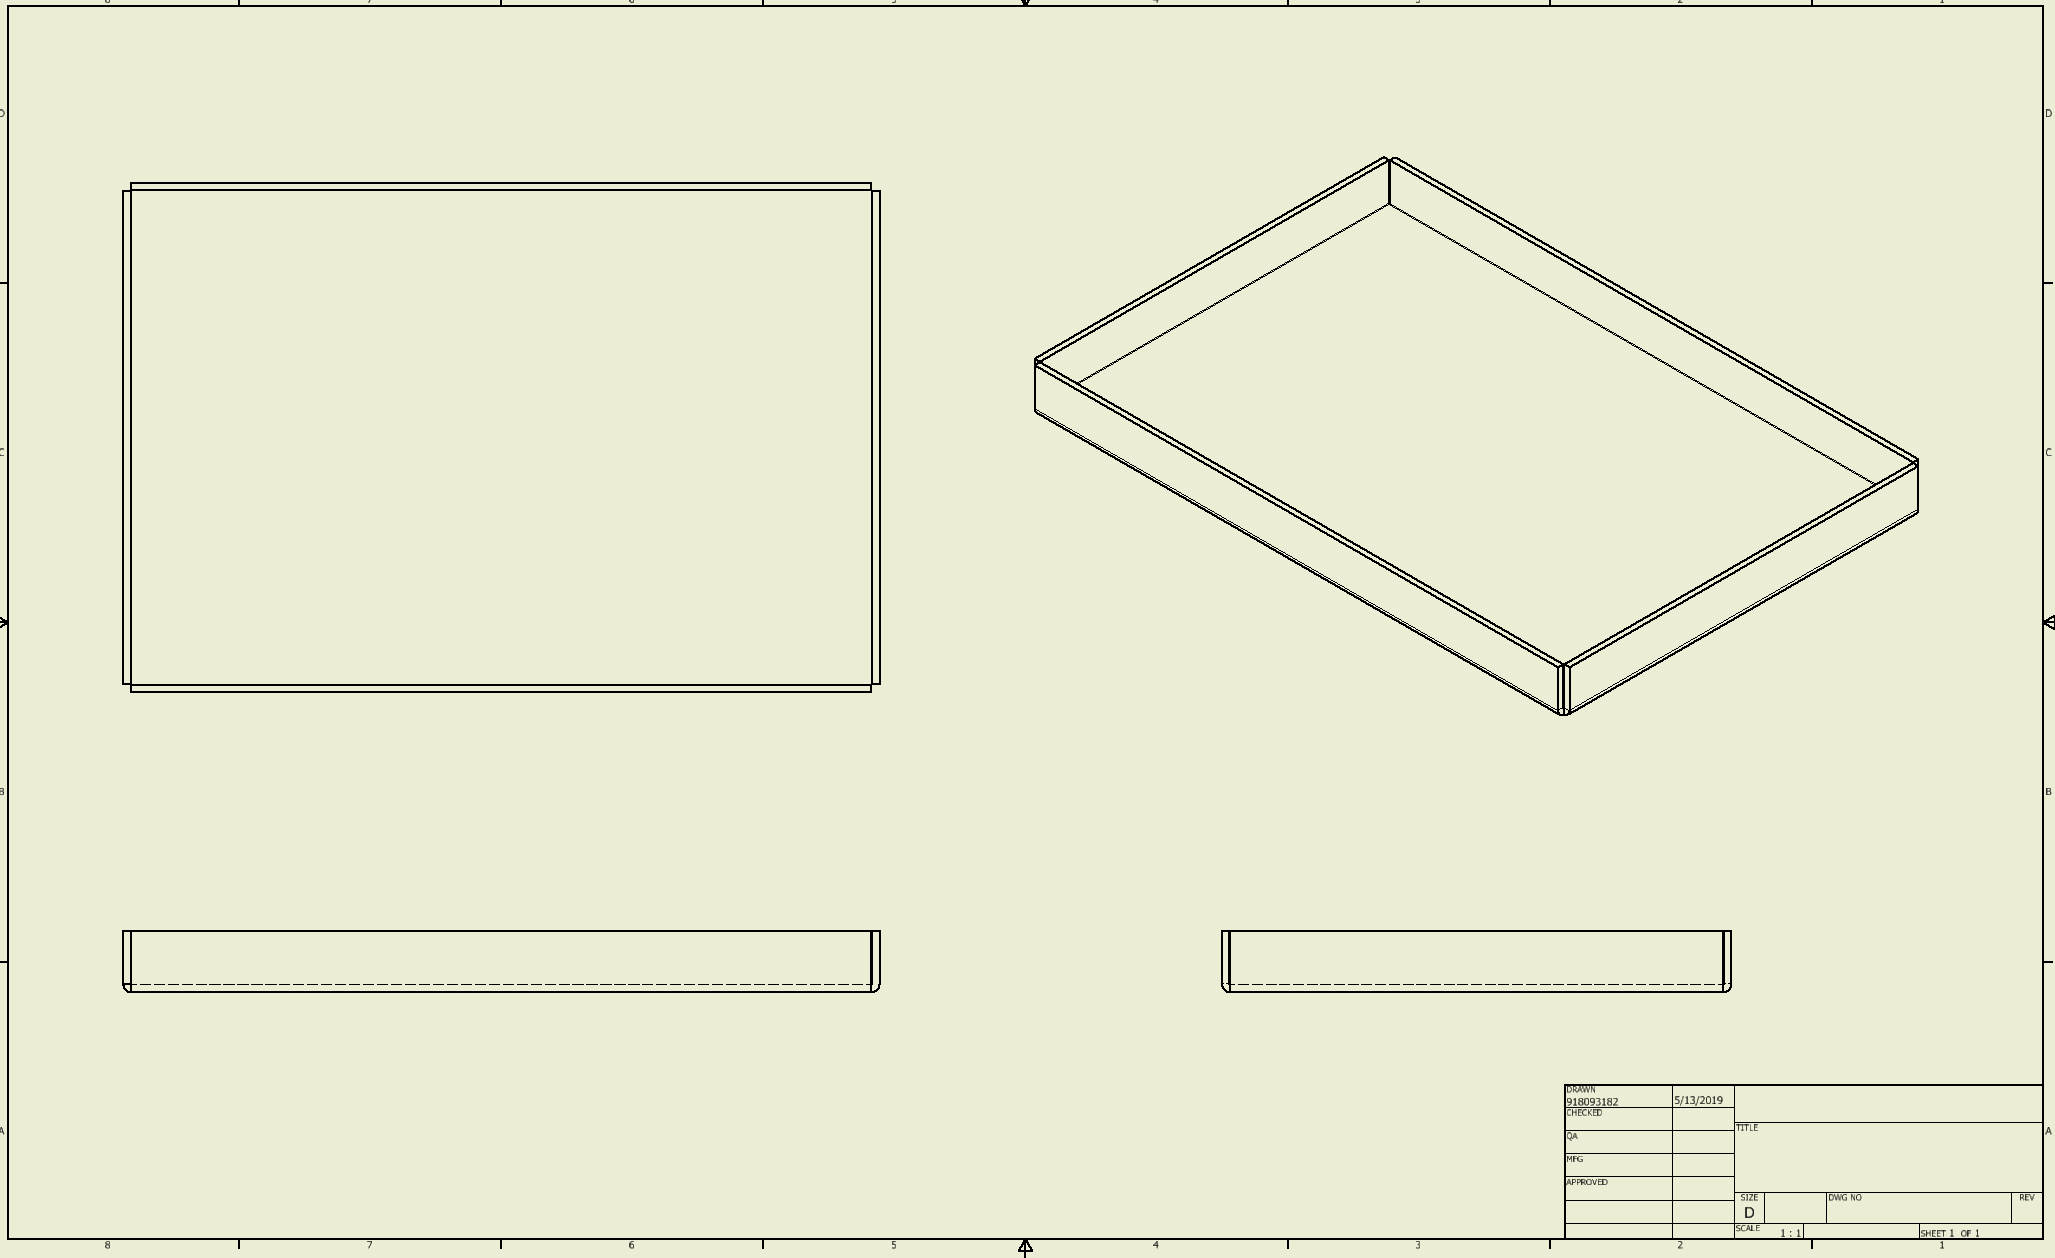 This is an orthographic drawing showing front, right & top views of a pan with an included perspective view.